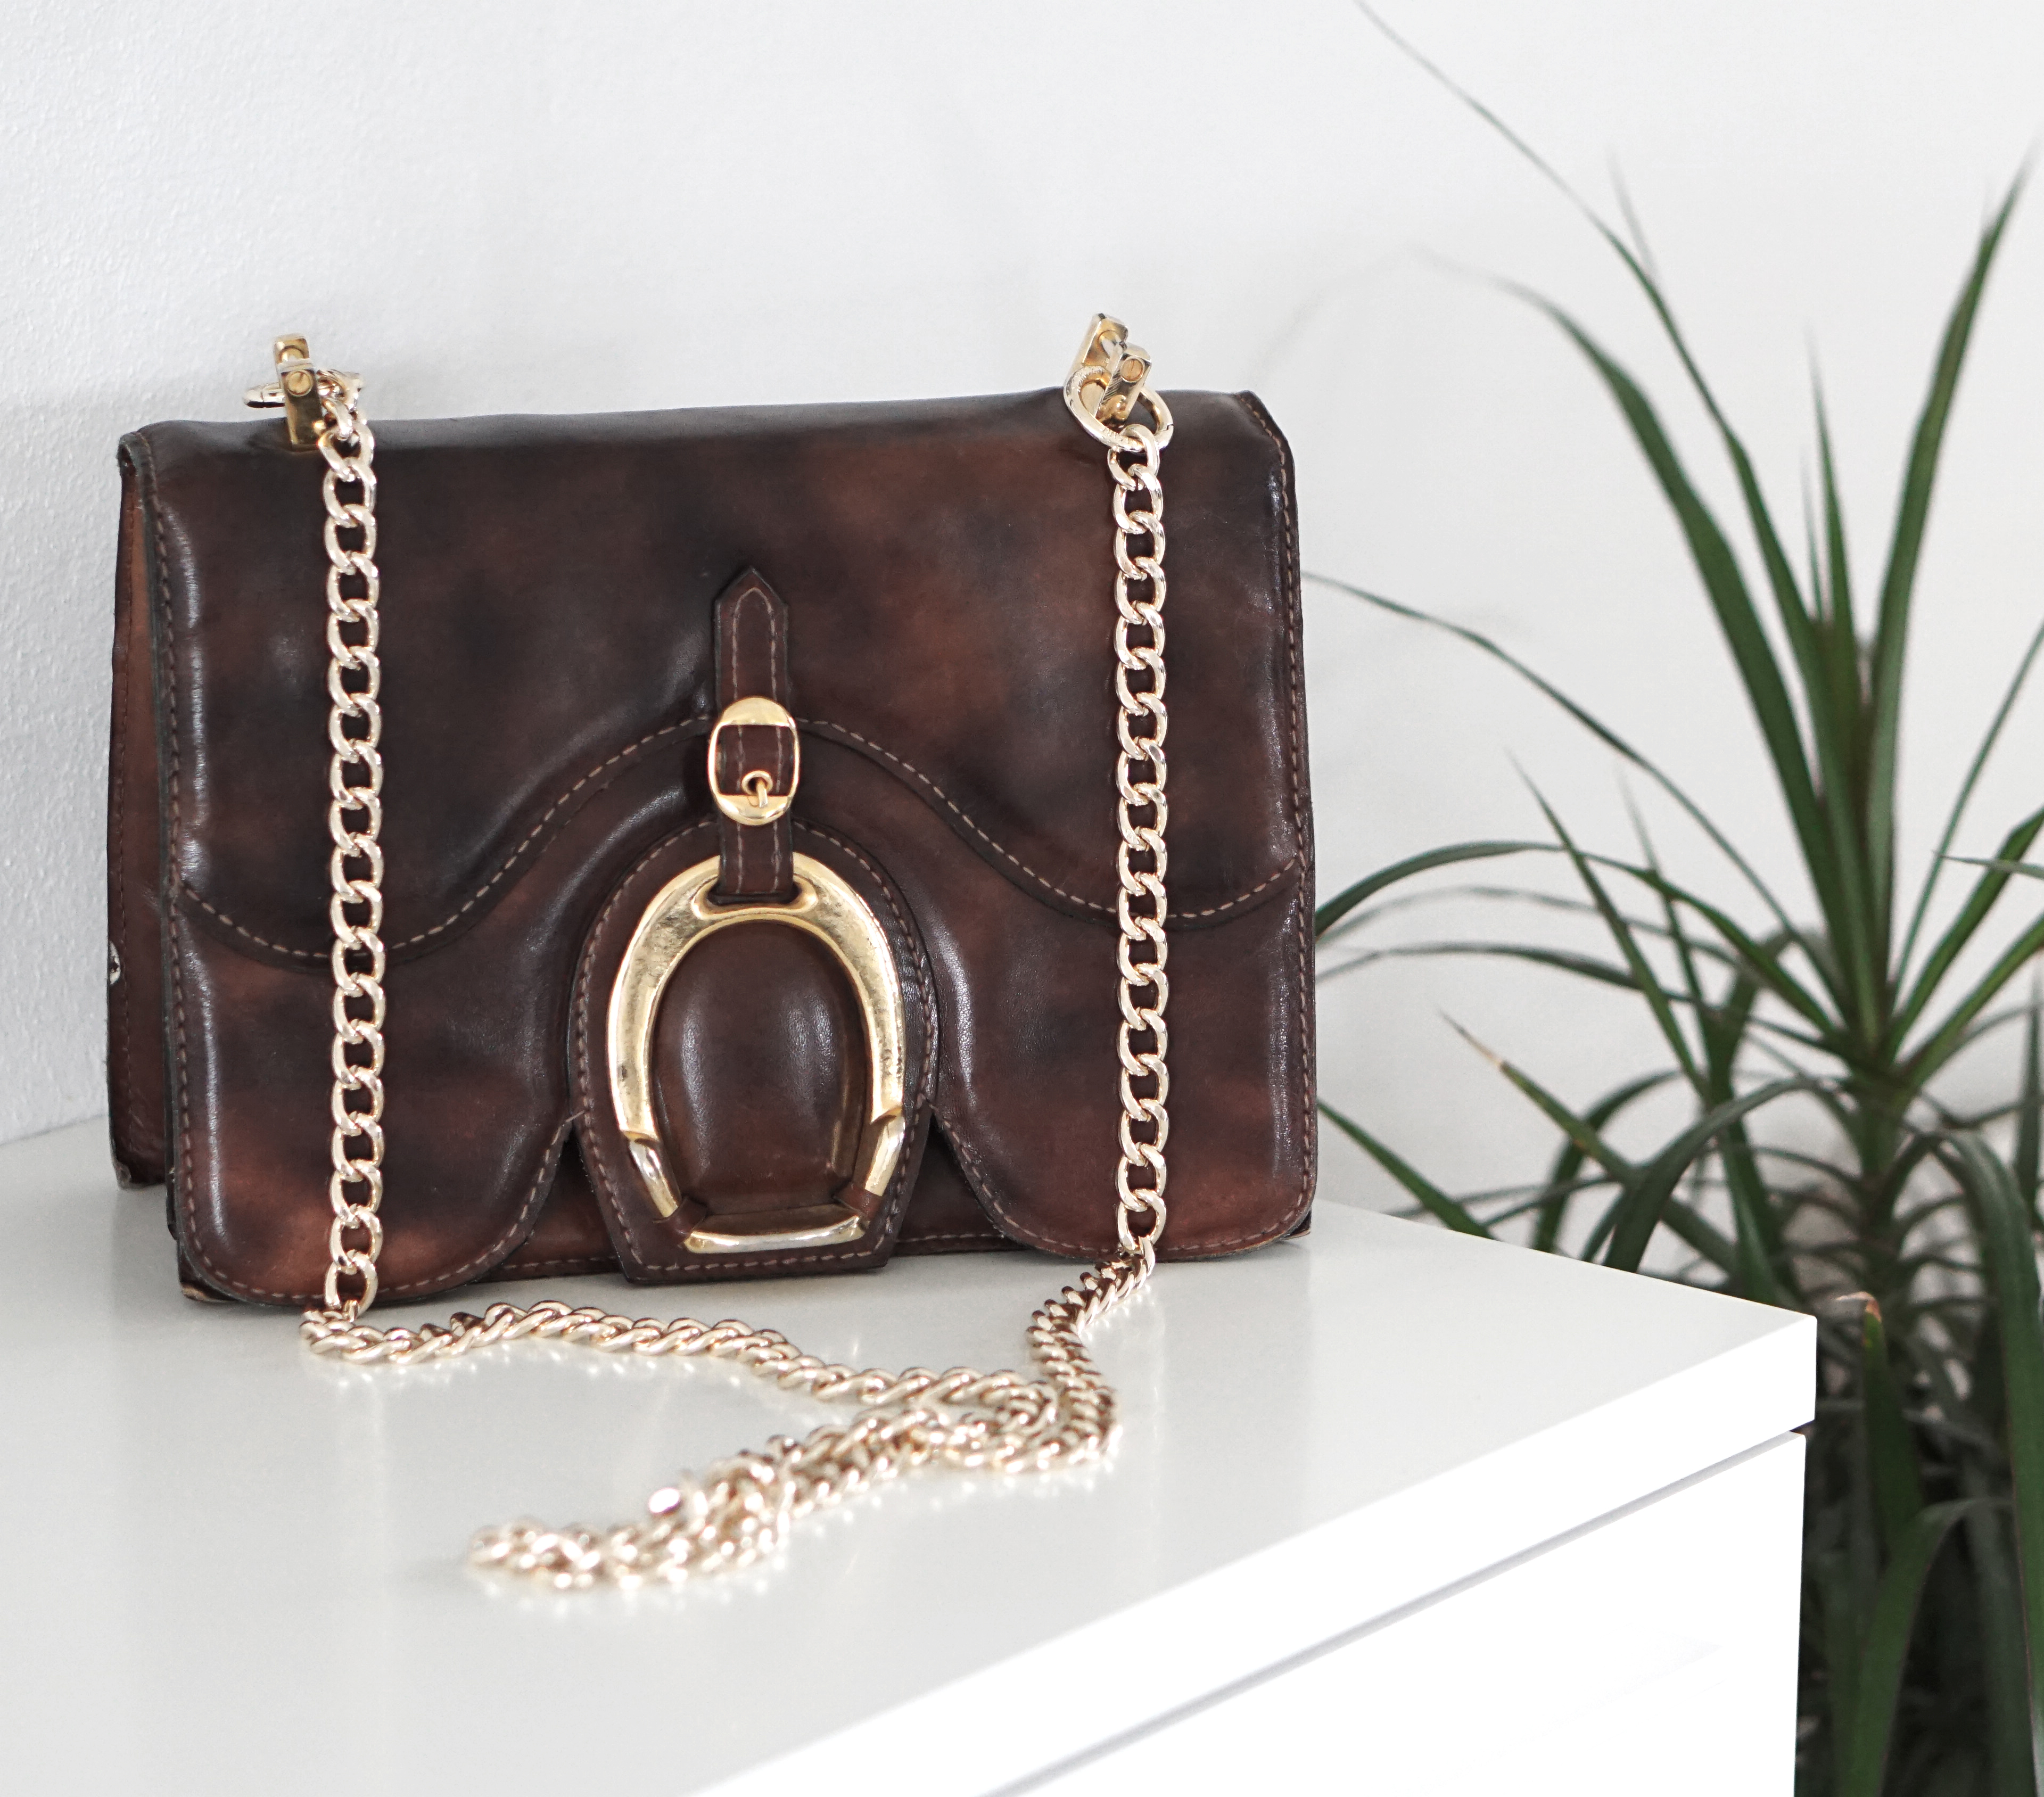 e62df674d19 I have already been flashing my beautiful vintage bag for you guys a few  times on just about all my channels, so in this post I thought I'd share a  few ...